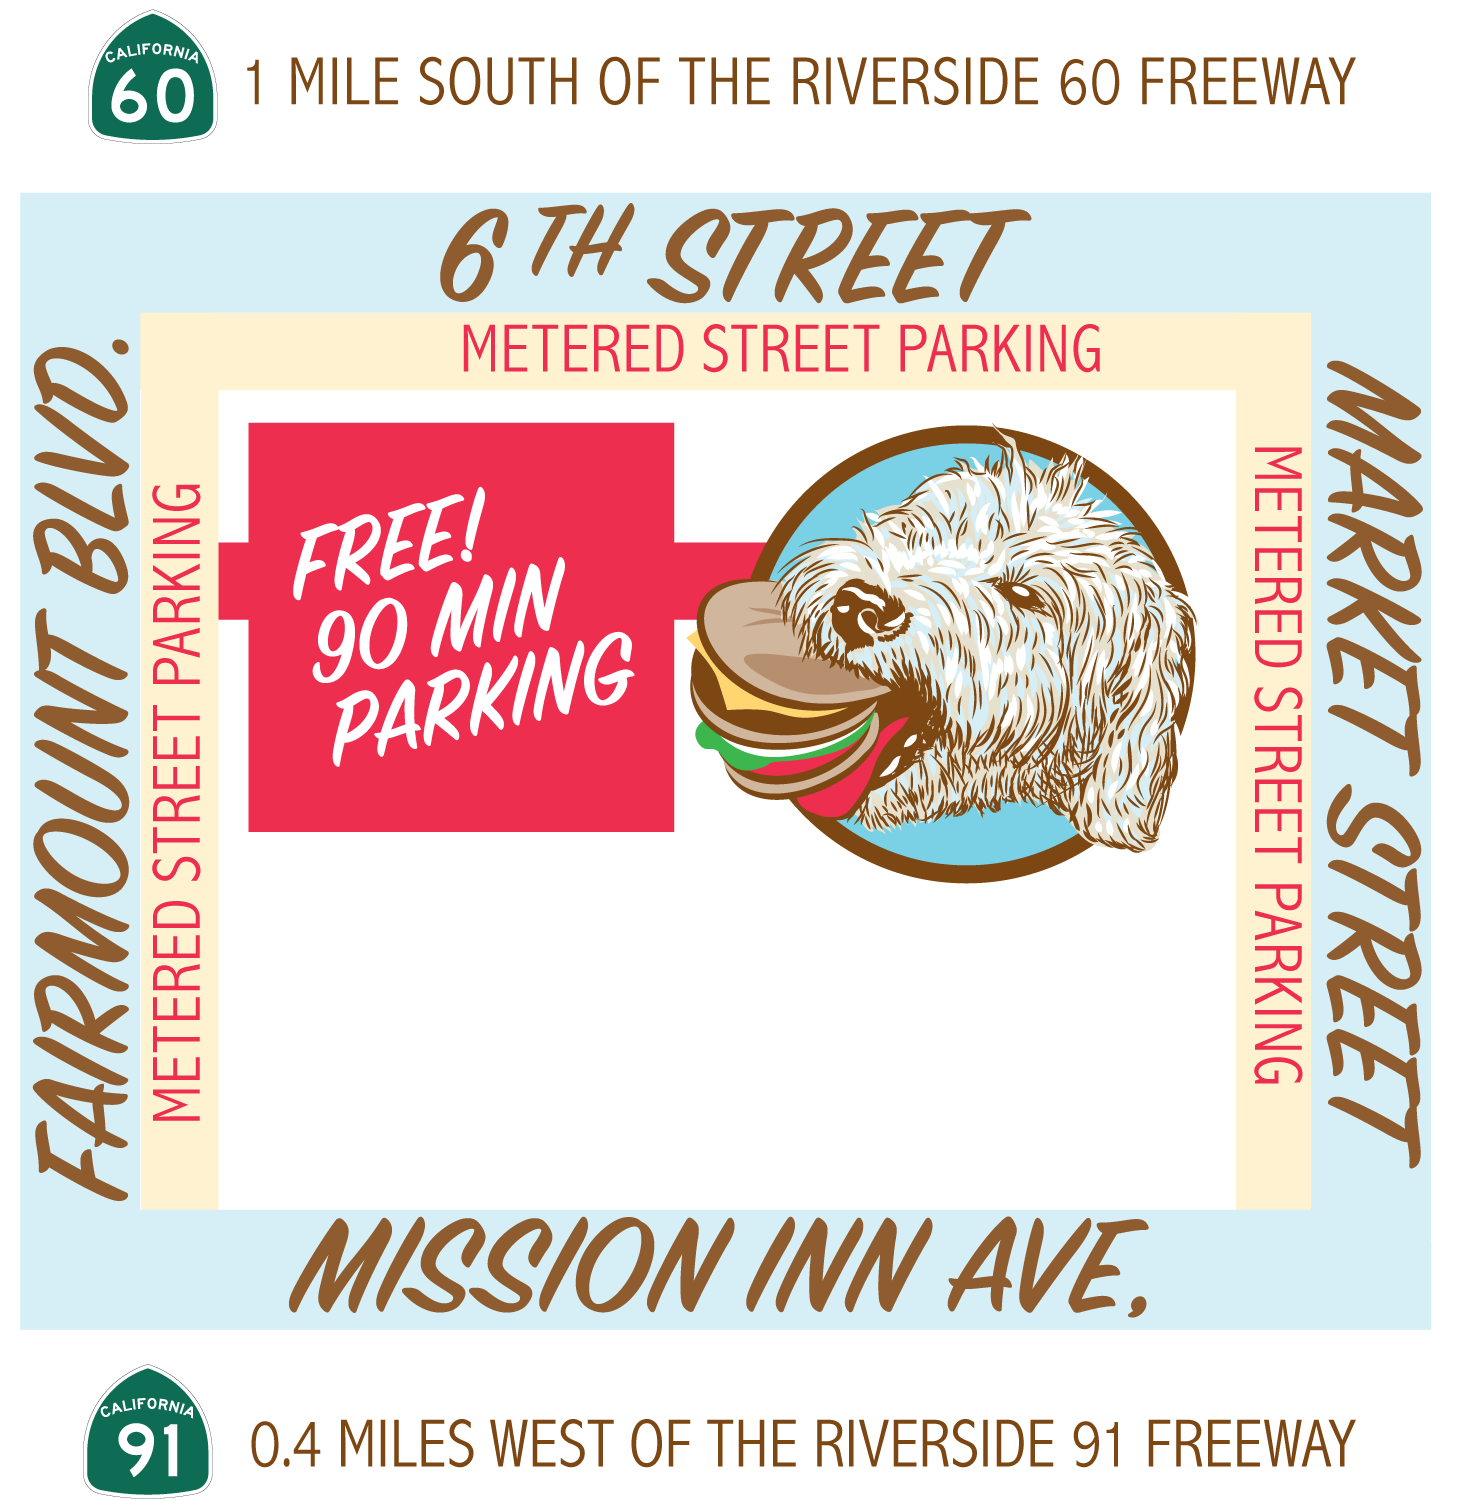 Illustrated map showing the location of the Monty's Riverside Food Lab location on Market Street and 6th Street, 0.4 miles north of the Riverside 91 Freeway along with the metered street parking on Fairmount Blvd, 6th Street and Market Street and the Free 90 minute parking lot off of Fairmount Blvd.